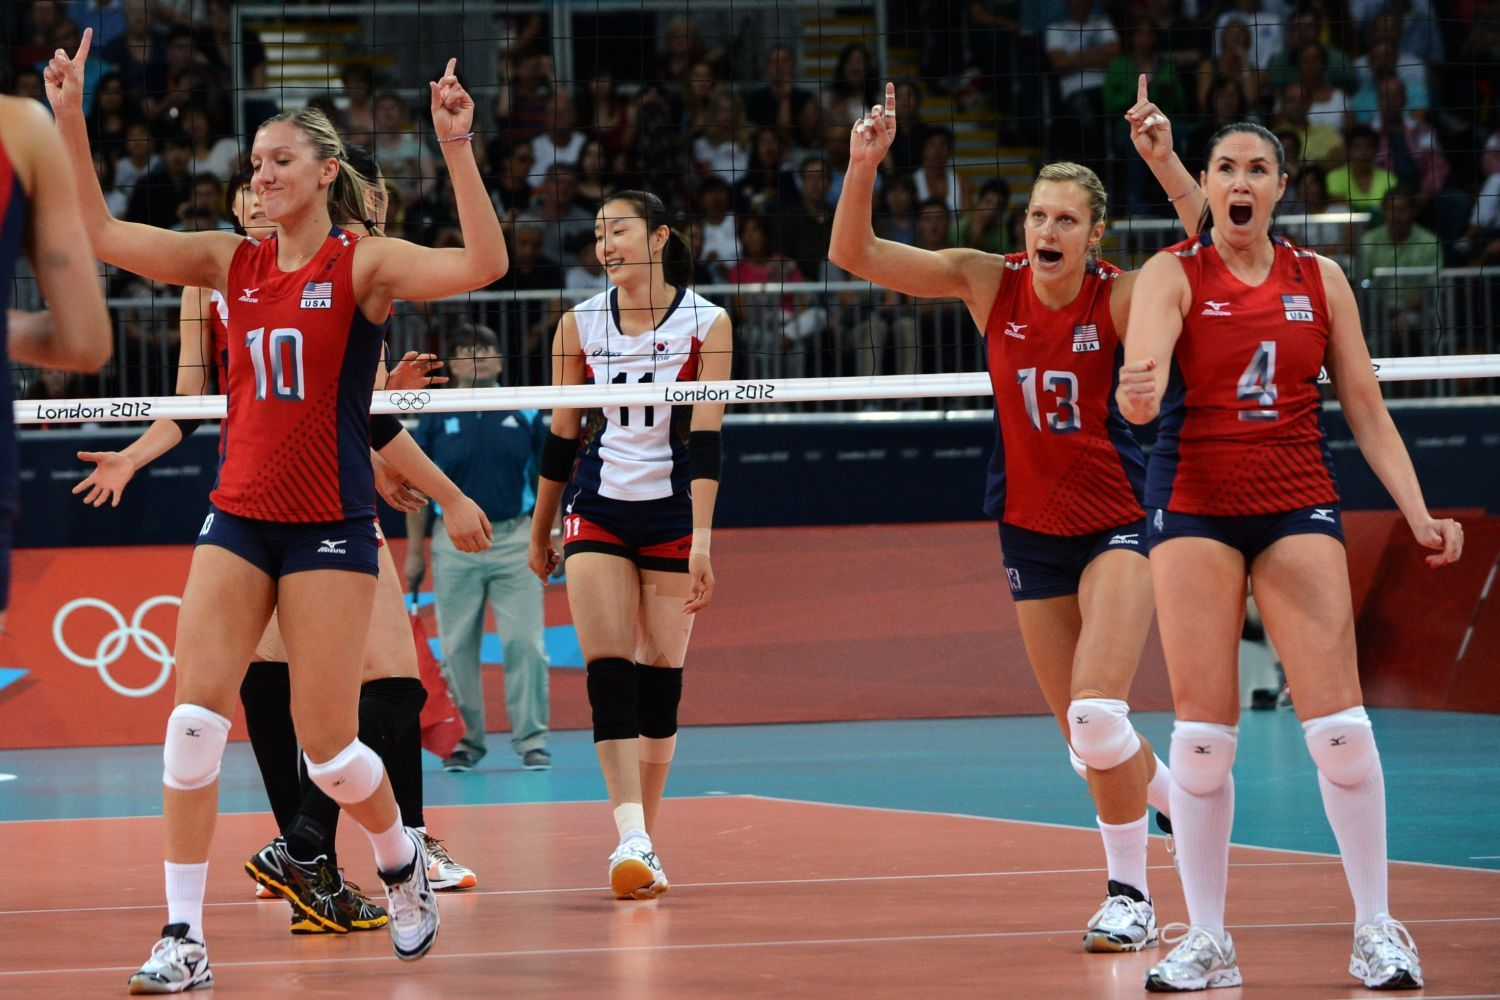 Usa Http Www Futurevolleyballplayers Com Women Volleyball Athletic Sports Team Usa